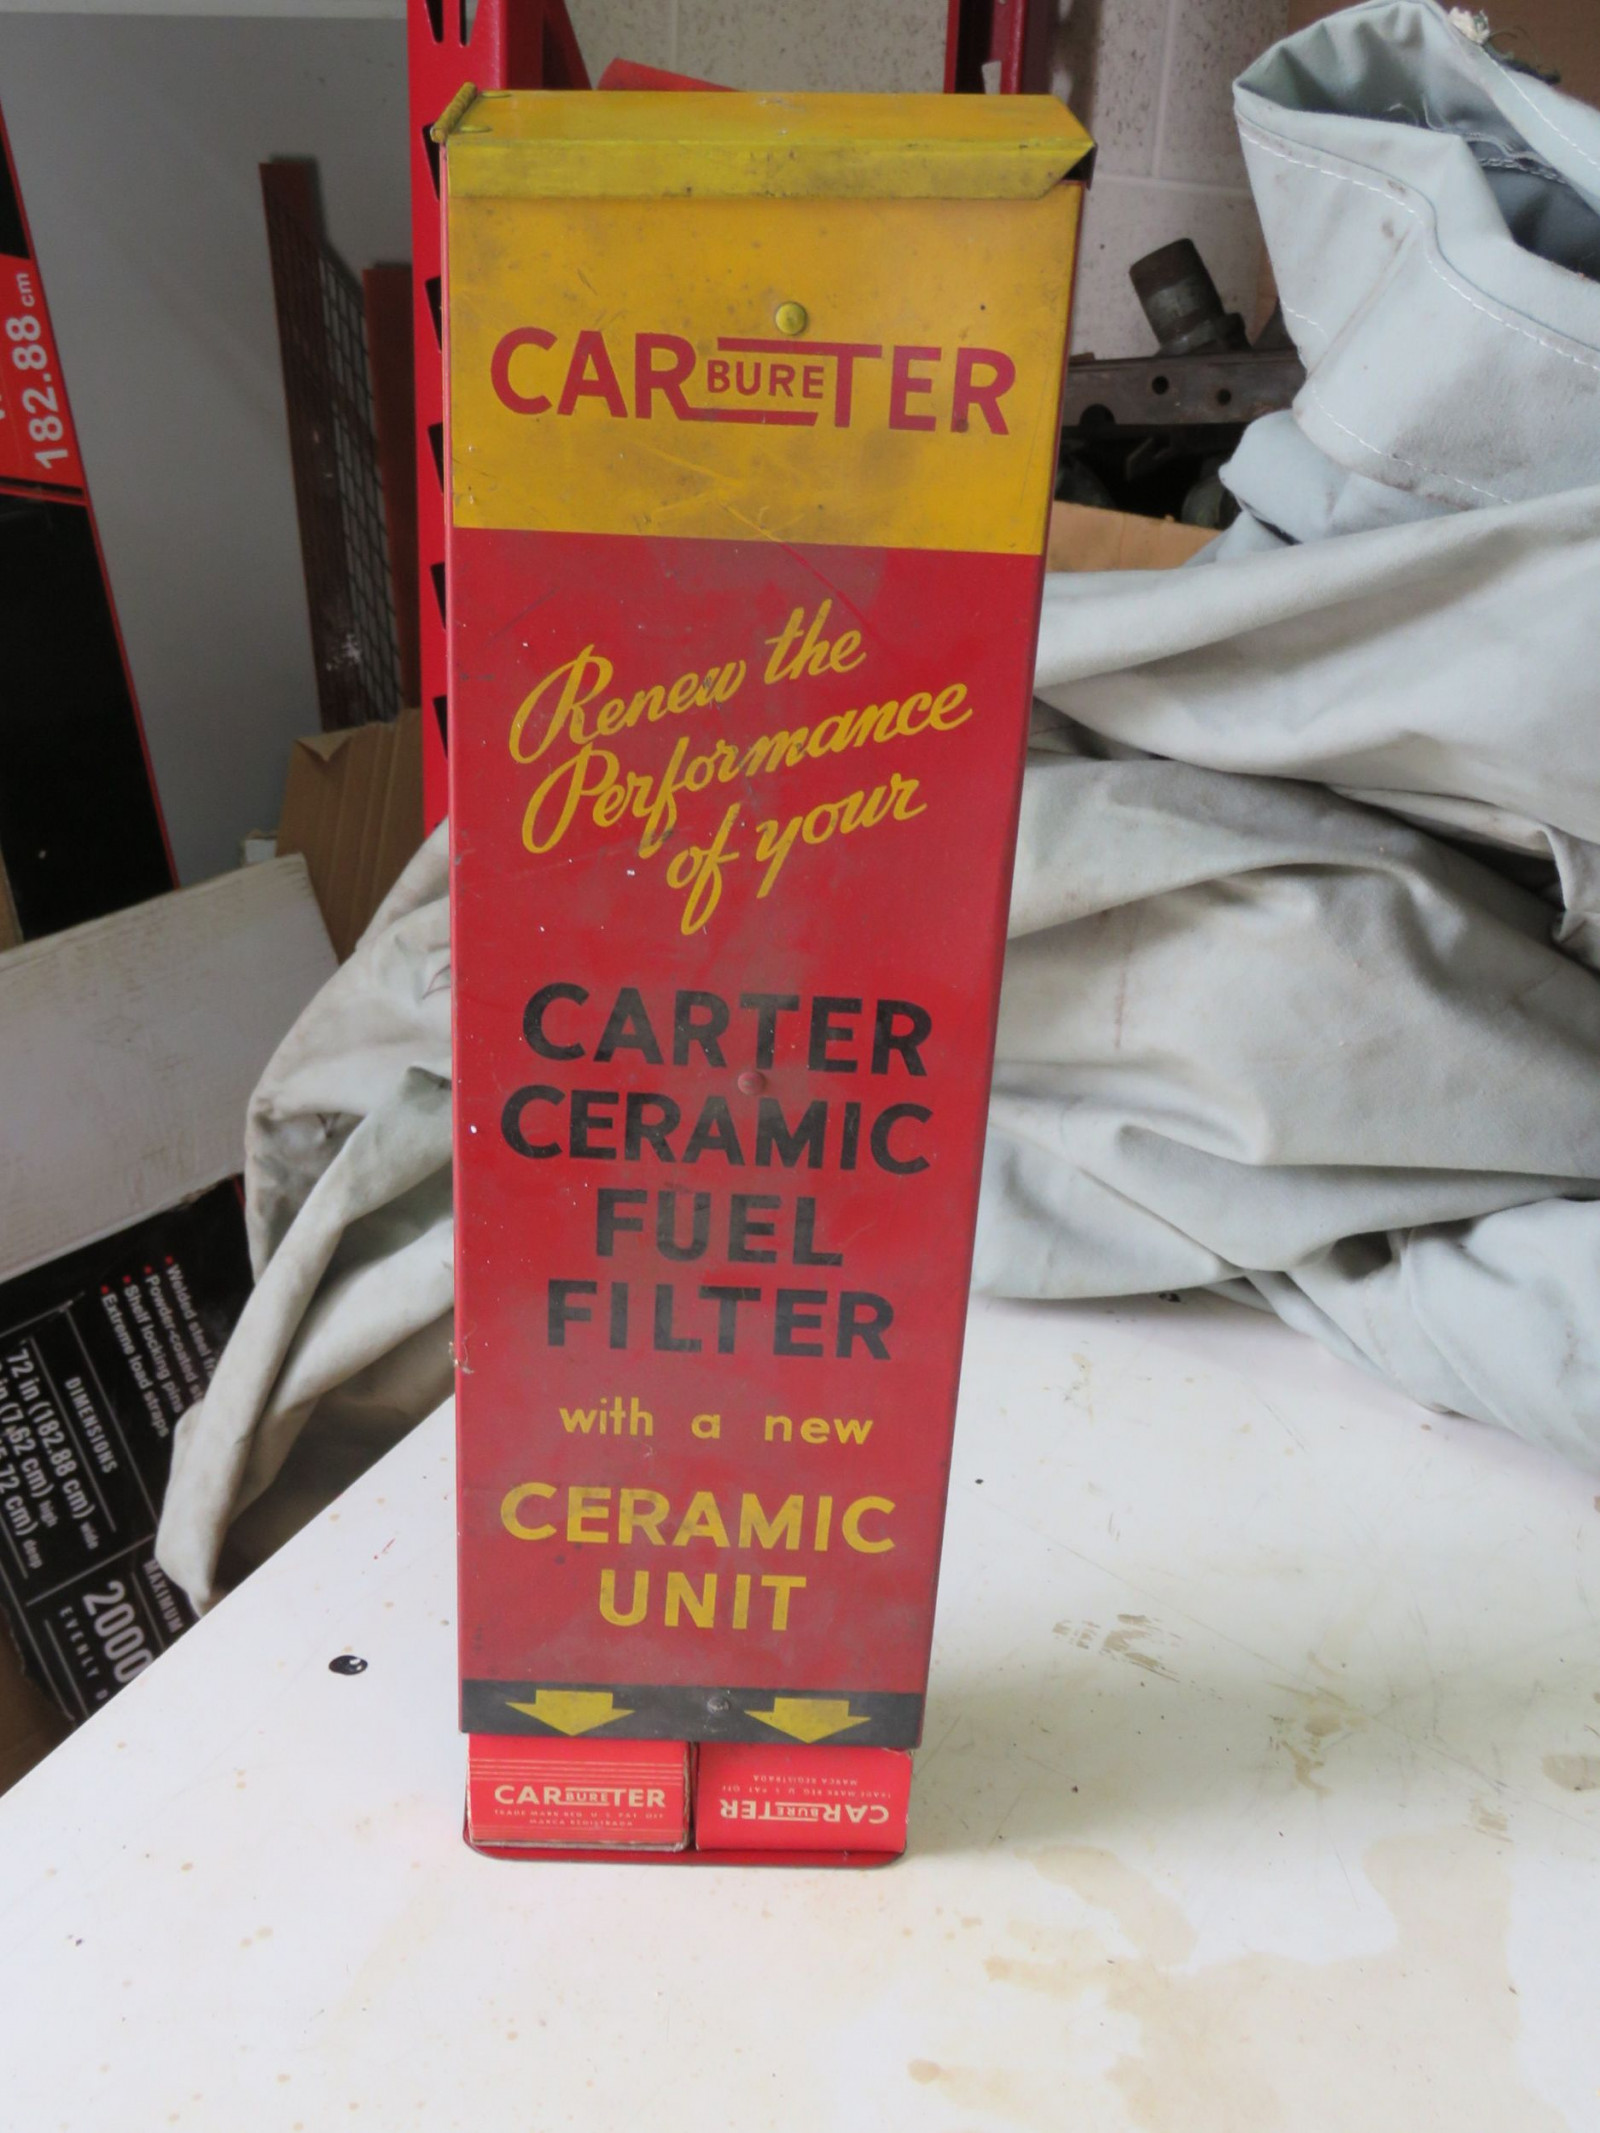 Carter Carburator Box  display - Image 1